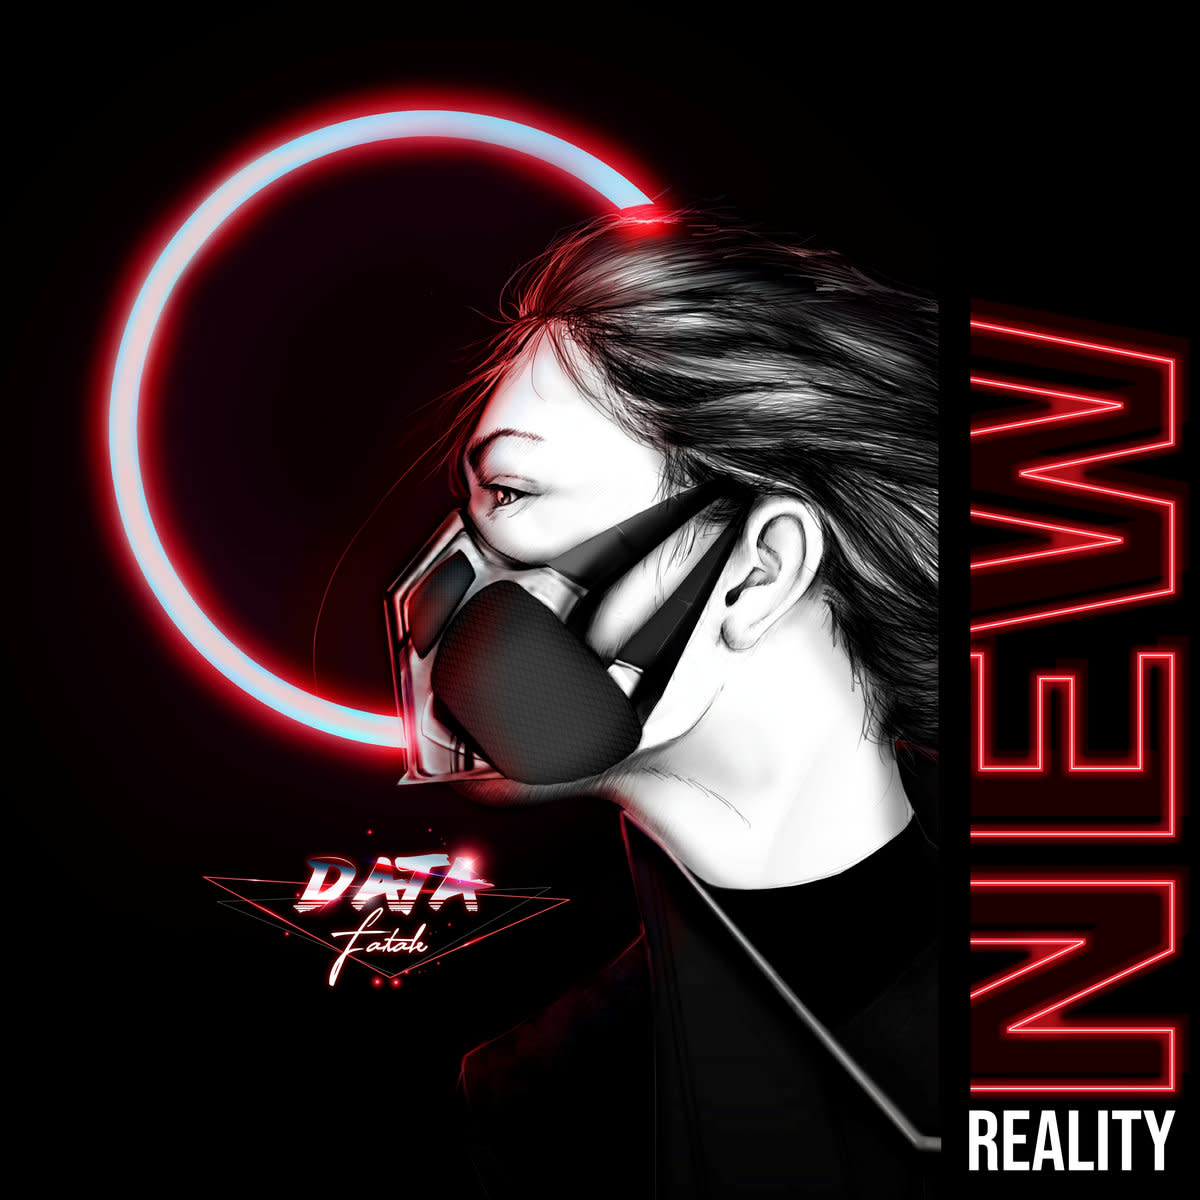 synth-ep-review-new-reality-by-data-fatale